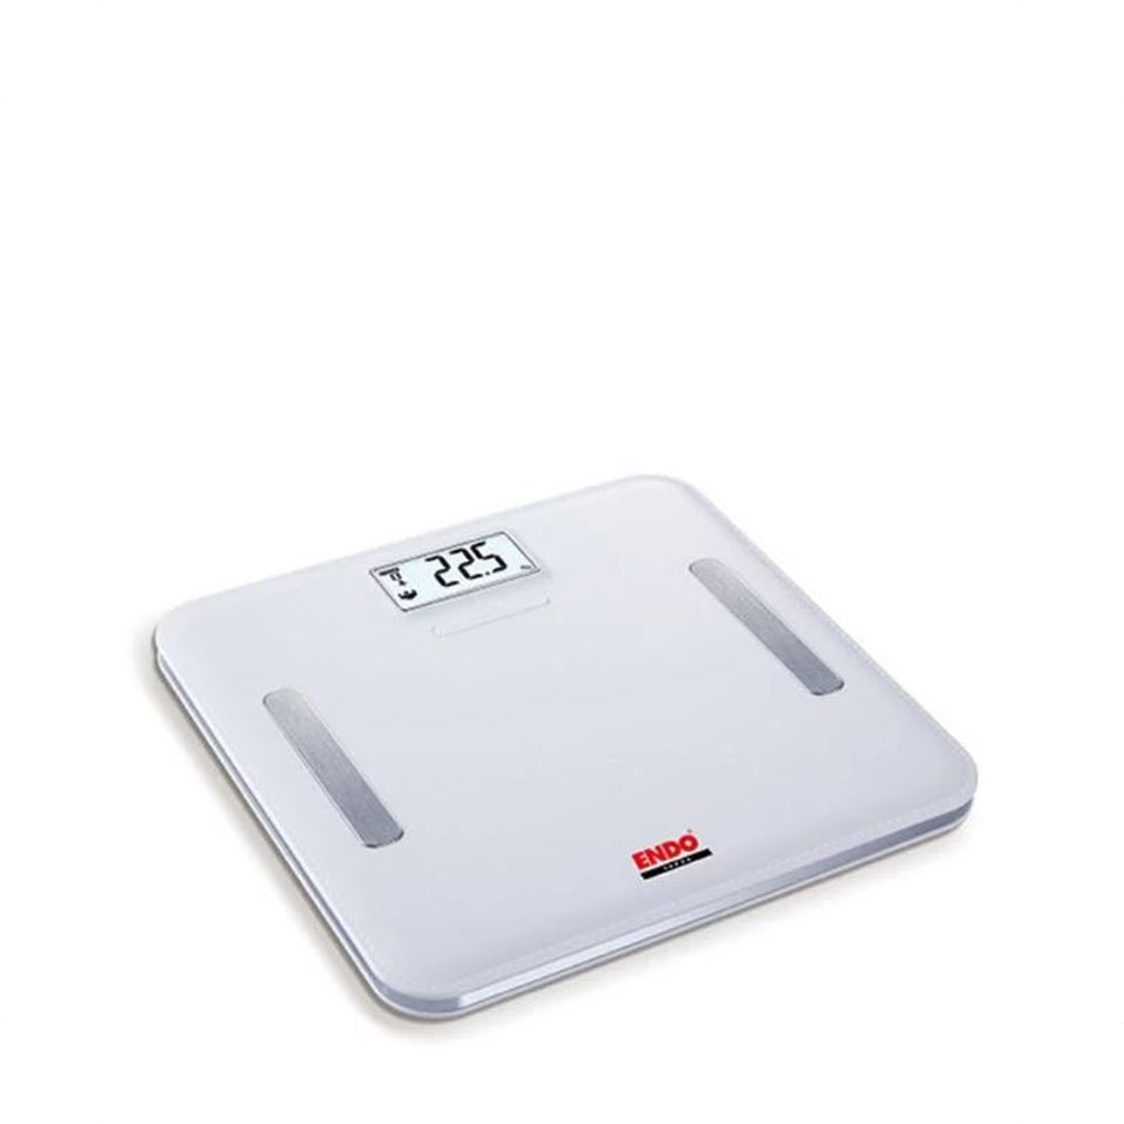 Digital High Precision Body Fat Anaysis Scale E-DBS751